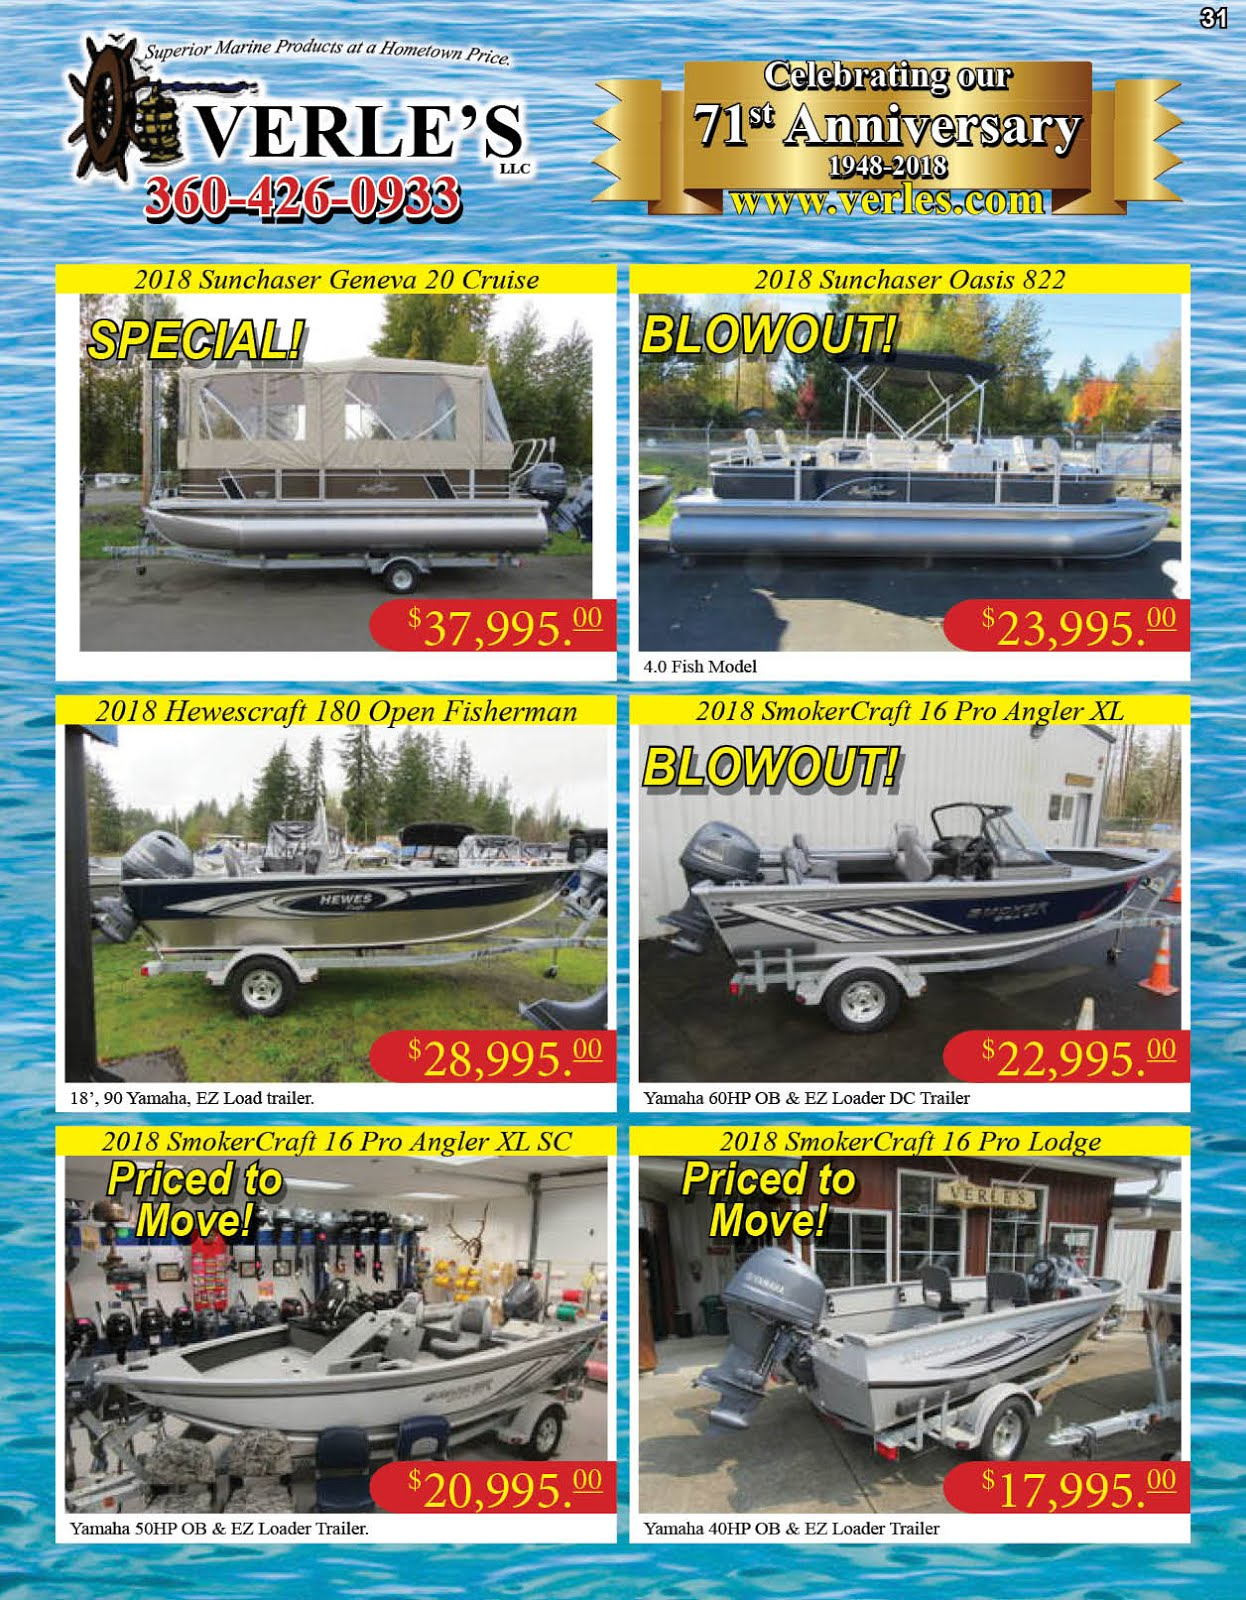 Verles 71st Anniversary!! Specials On Boats Marine Gear Tackle Guns Ammo!!